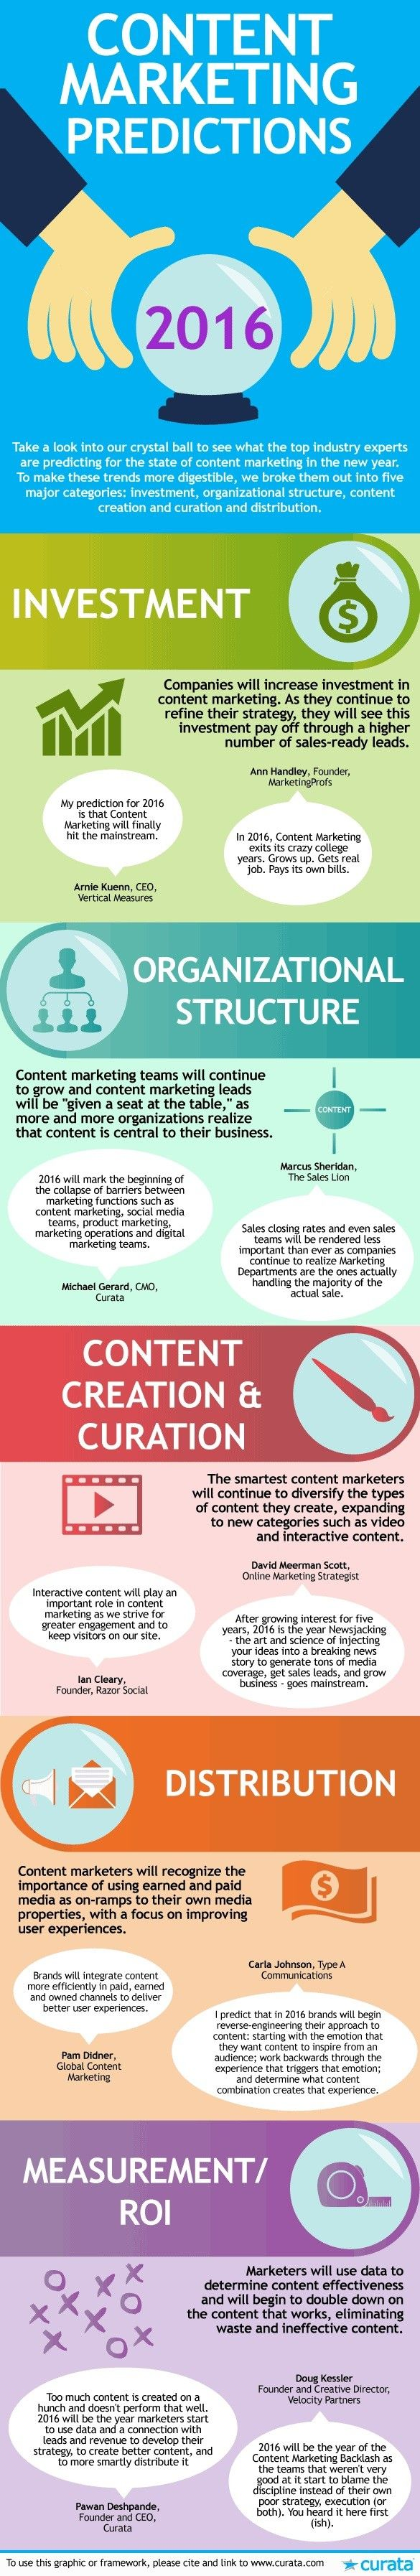 Content - Content Marketing Predictions for 2016 [Infographic] - @marketingprofs